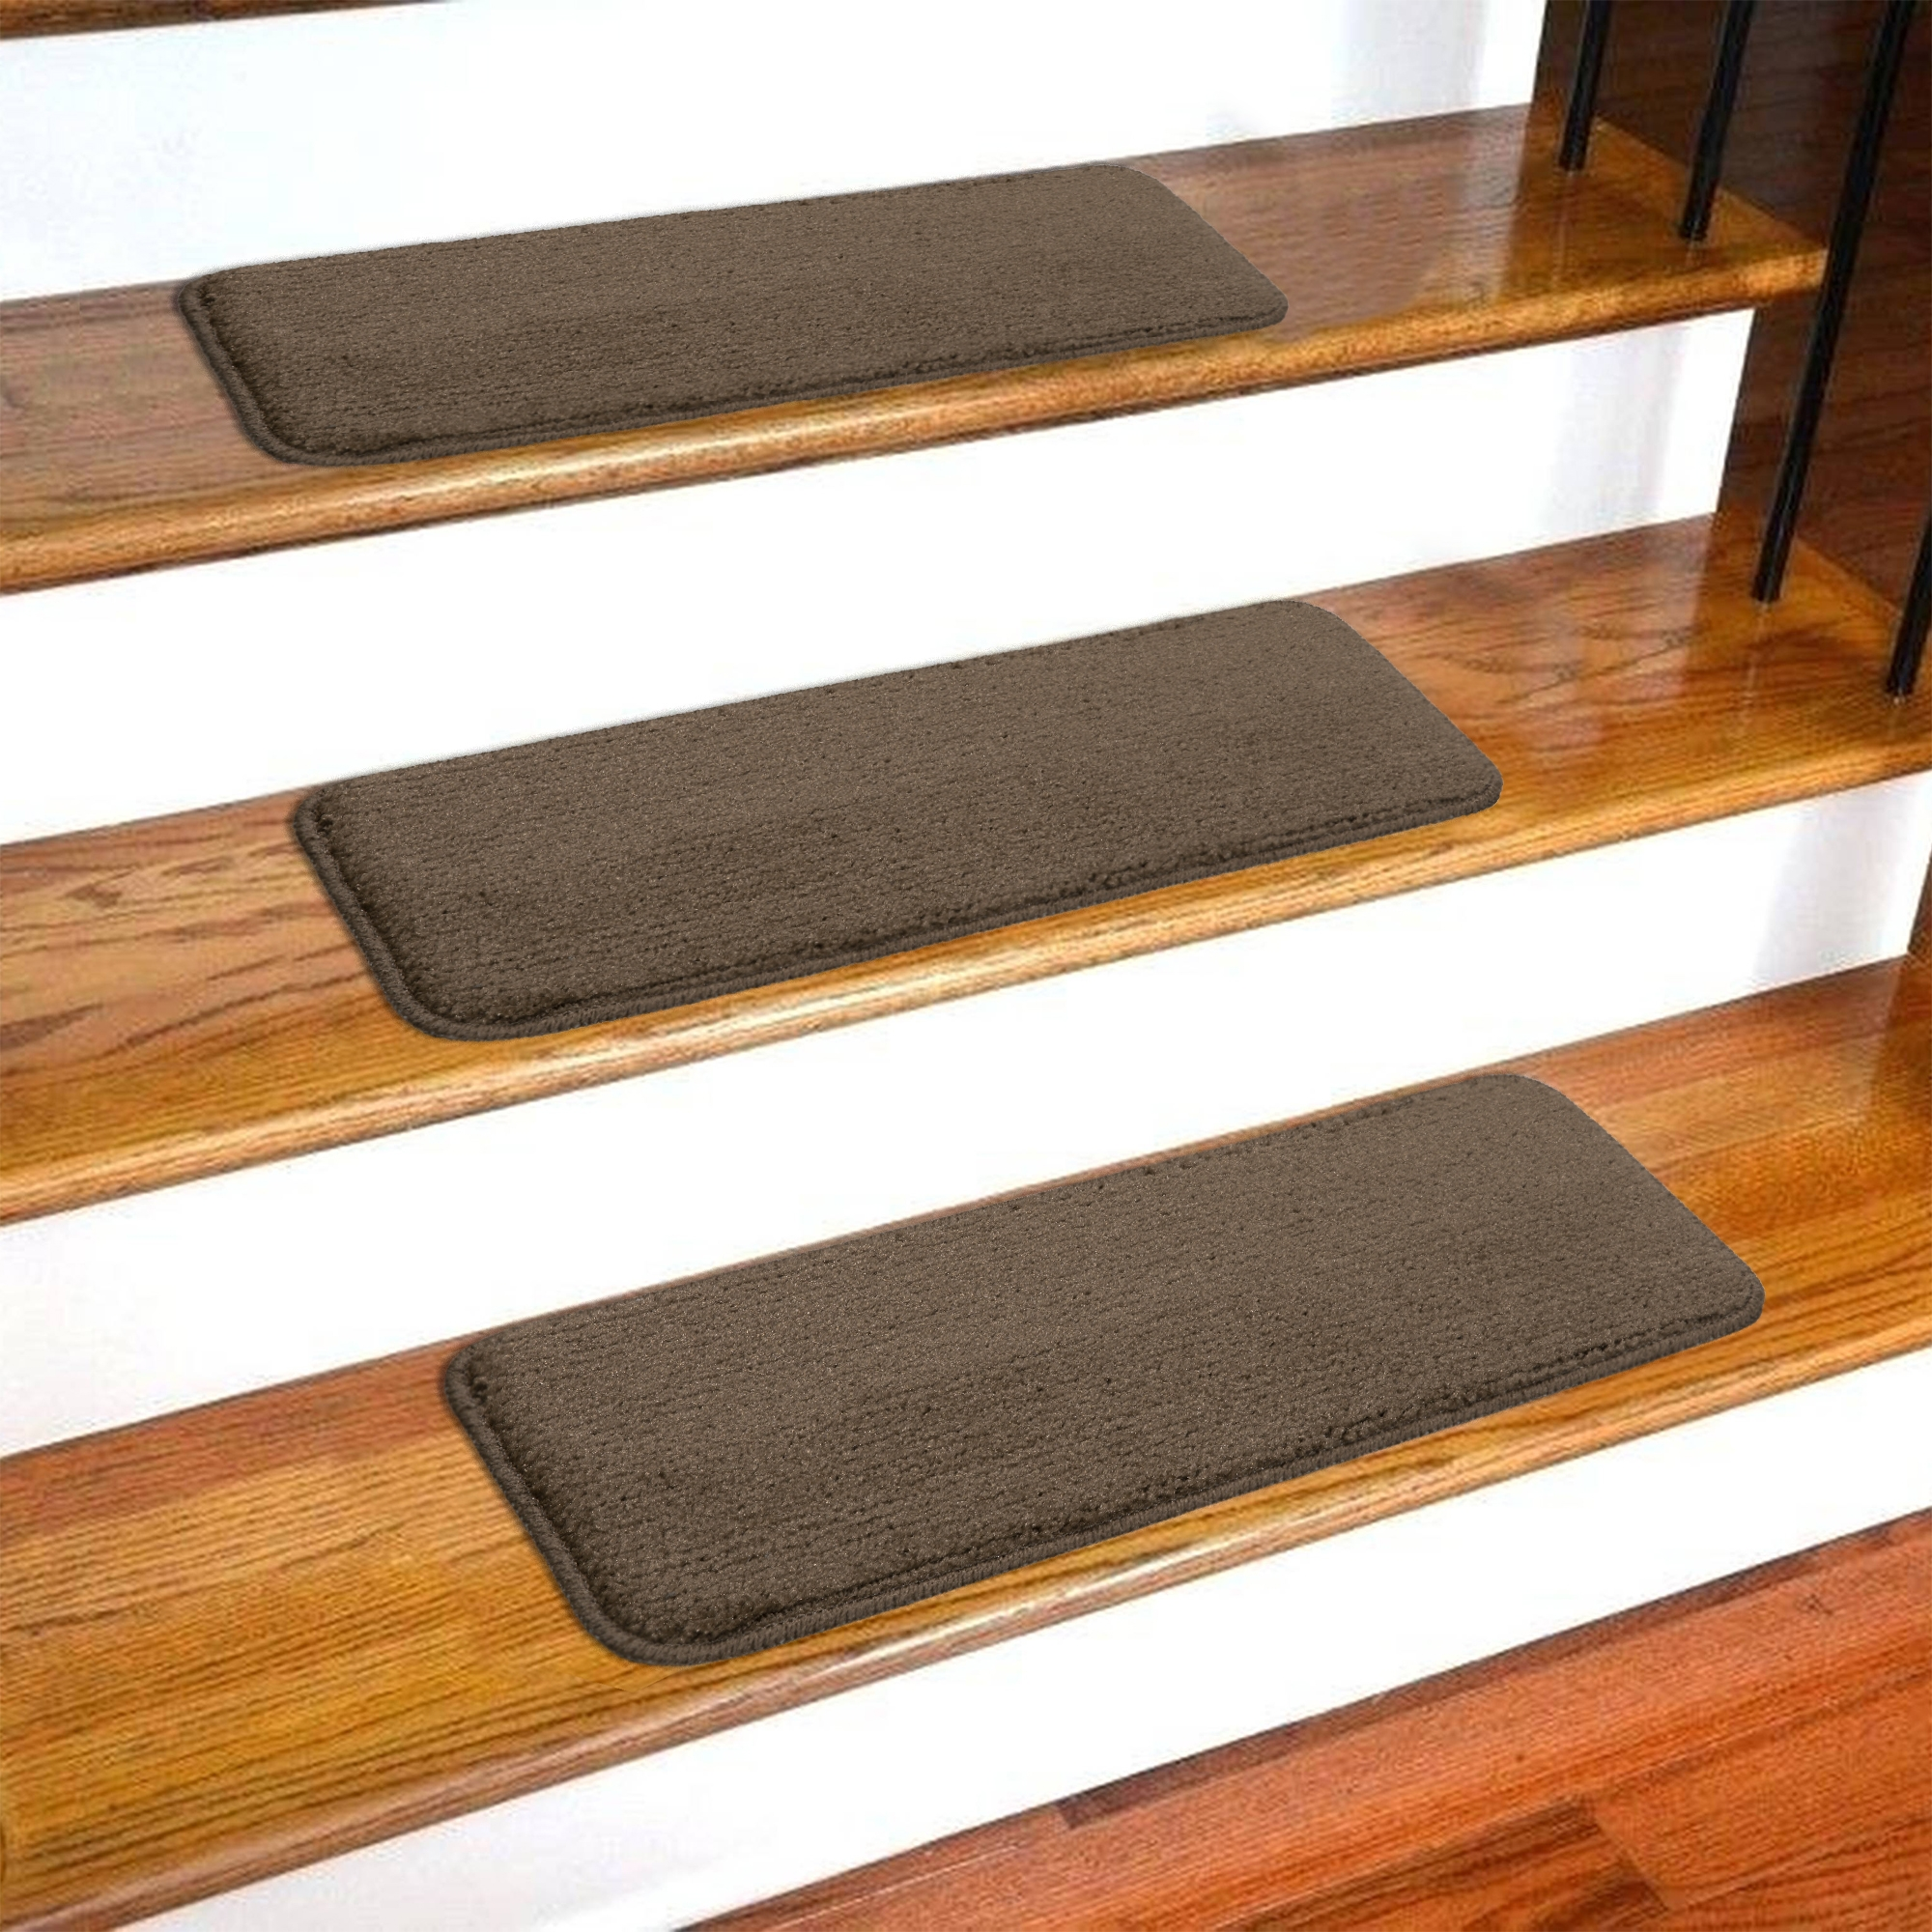 Ottomanson Softy Stair Treads Solid Skid Resistant Rubber Backing   Carpet On Wooden Stairs   Dark   Appreciation   Basement   Fitting   Contemporary